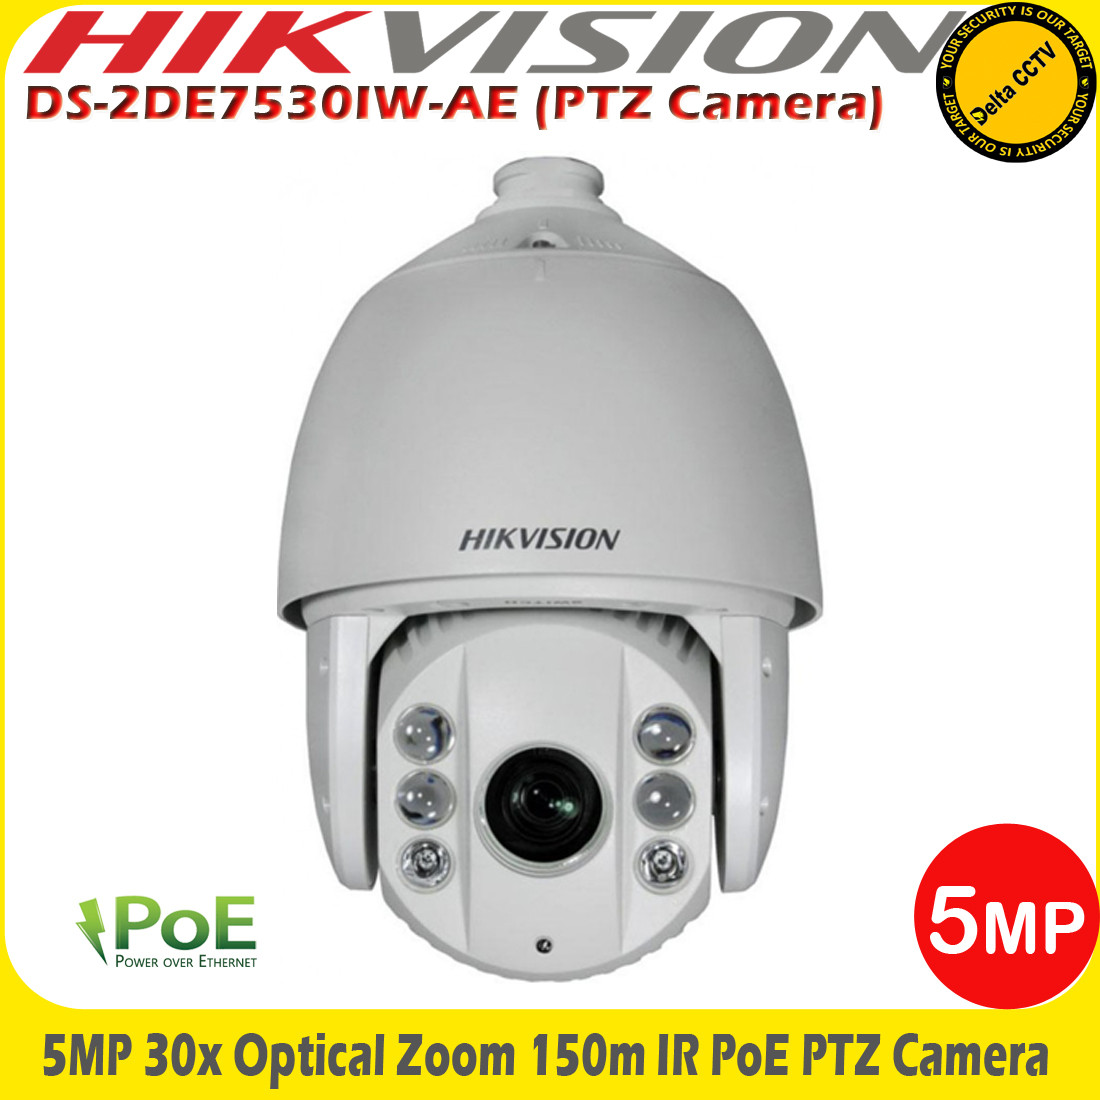 Hikvision DS-2DE7530IW-AE 5MP 30x Optical Zoom 150m IR PoE